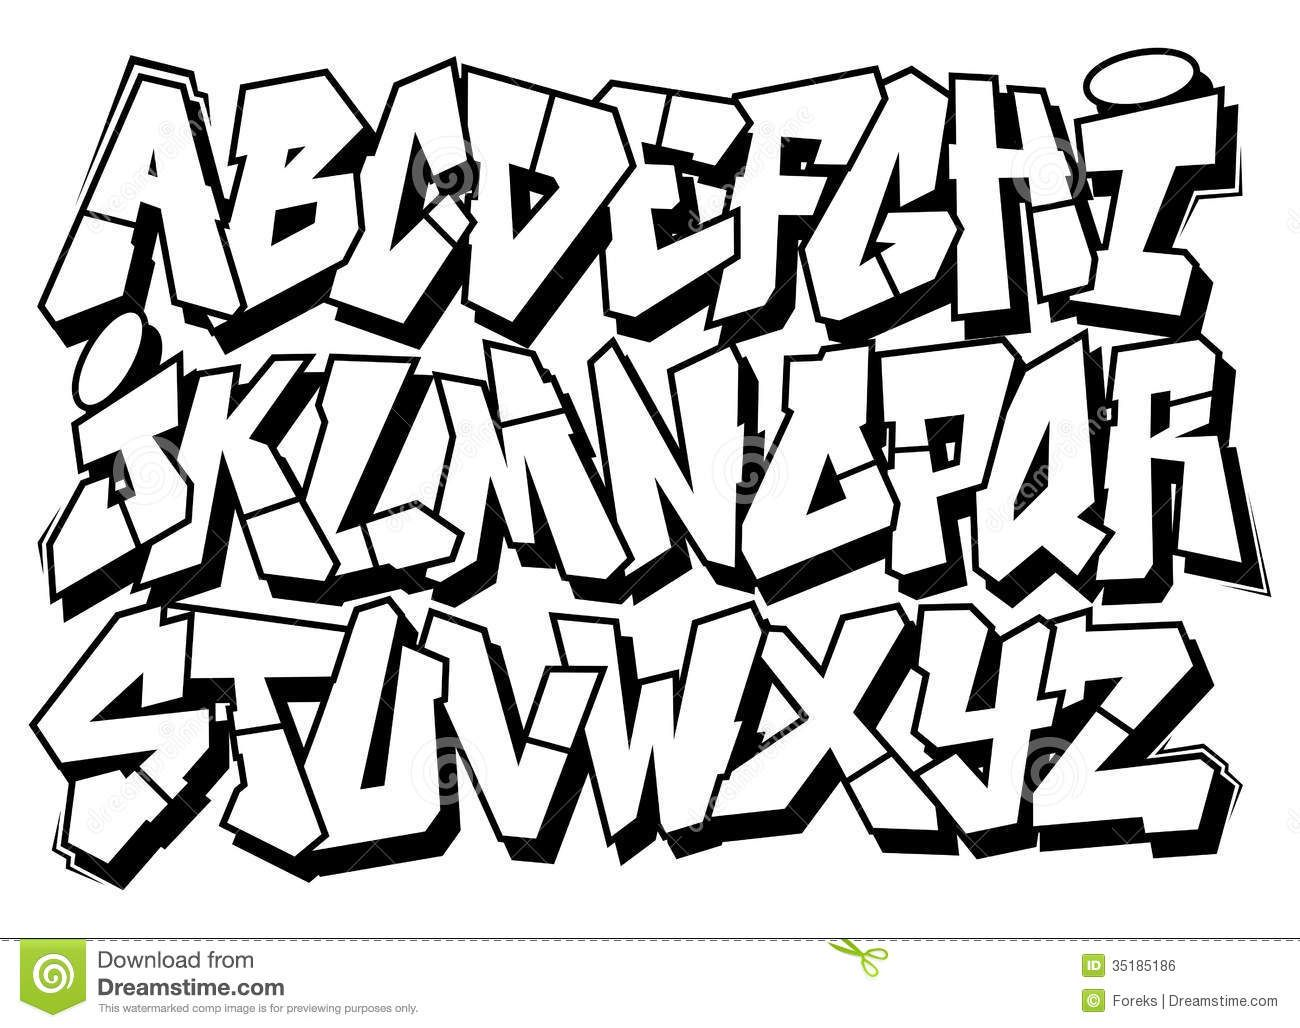 Classic street art graffiti font type alphabet download from over 33 million high quality stock photos images vectors sign up for free today